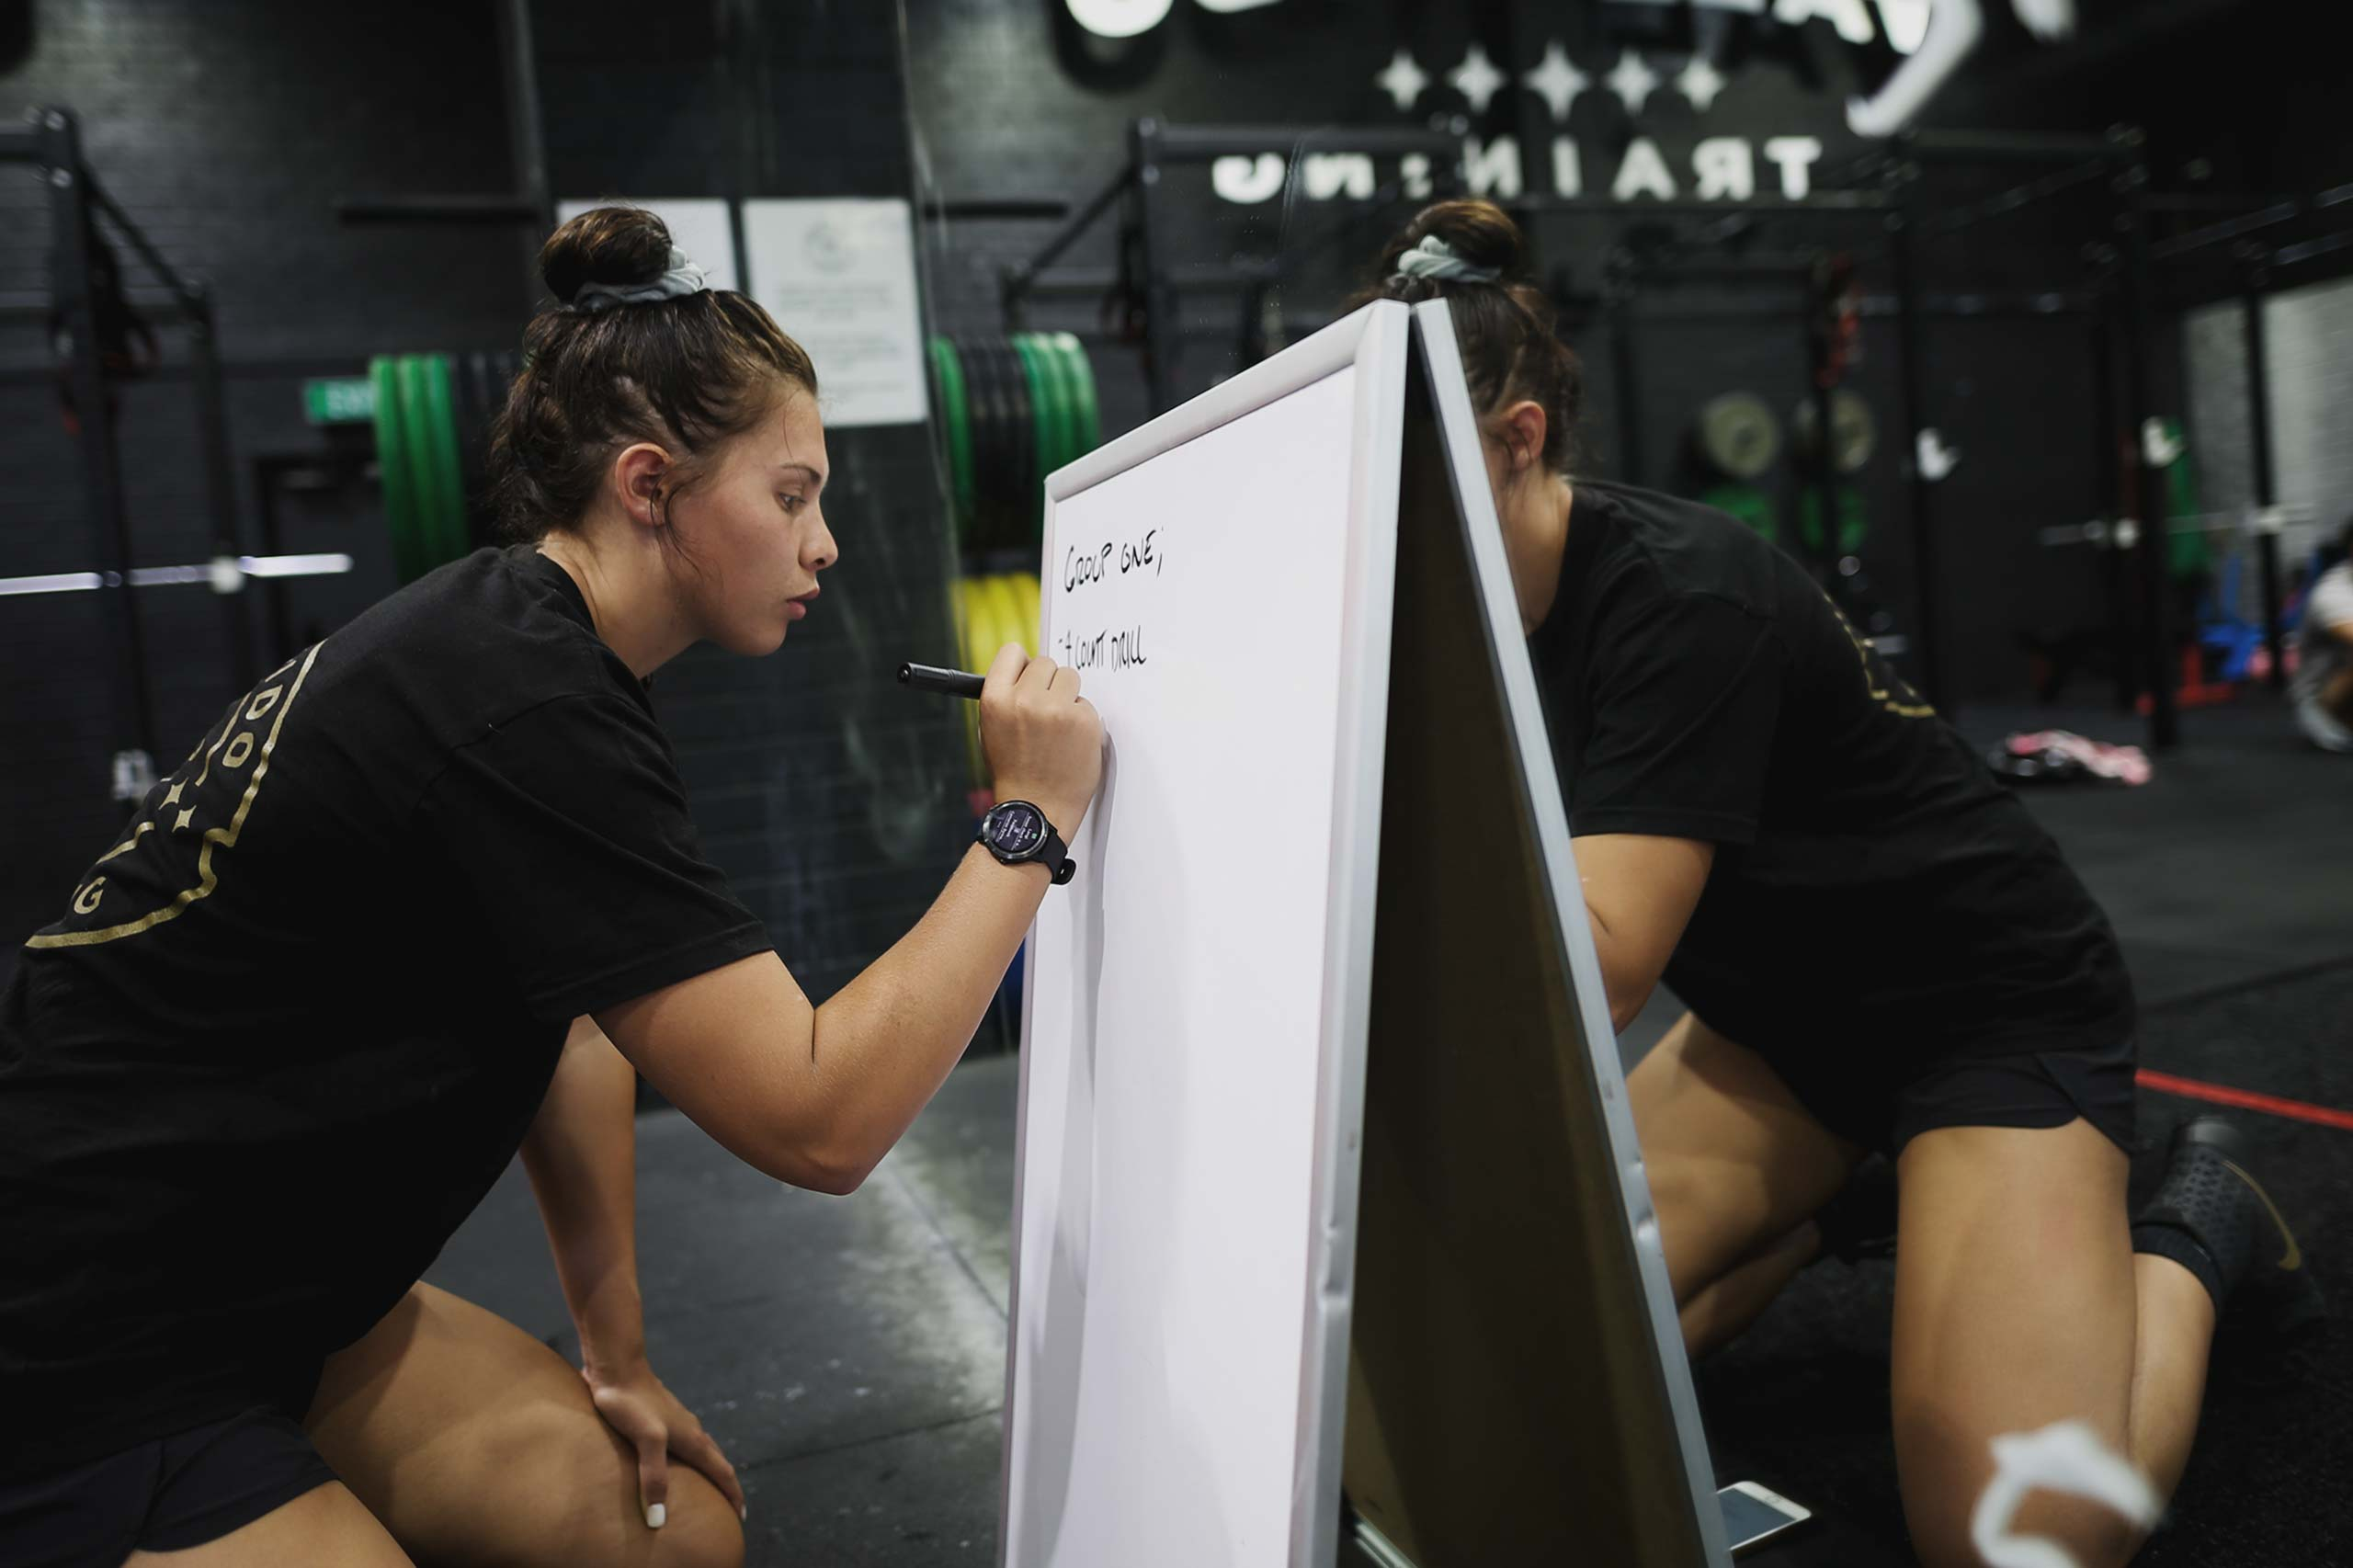 che kenneally writing on whiteboard at vale tudo training